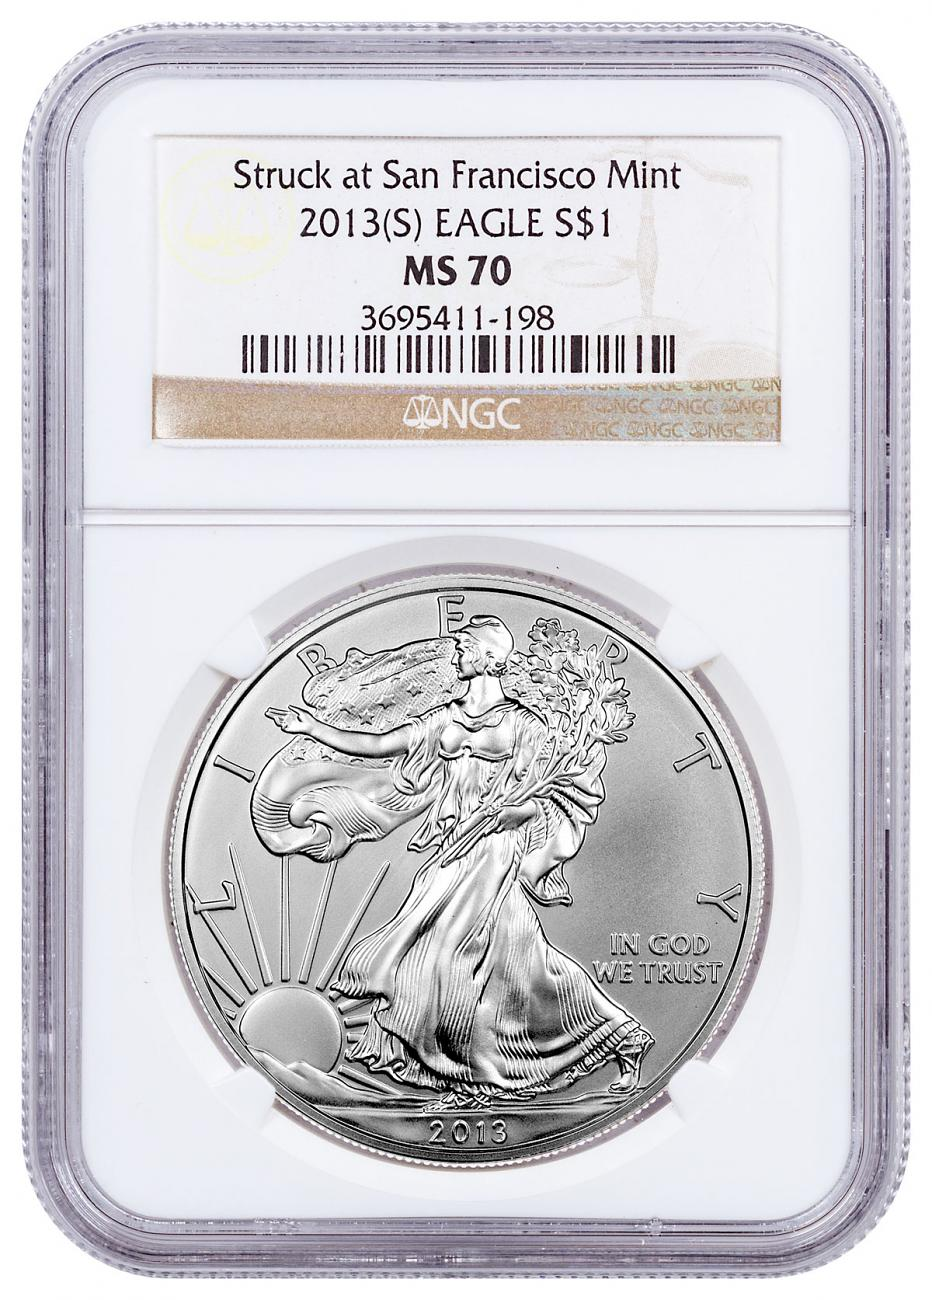 2013-(S) Silver Eagle Struck at San Francisco NGC MS70